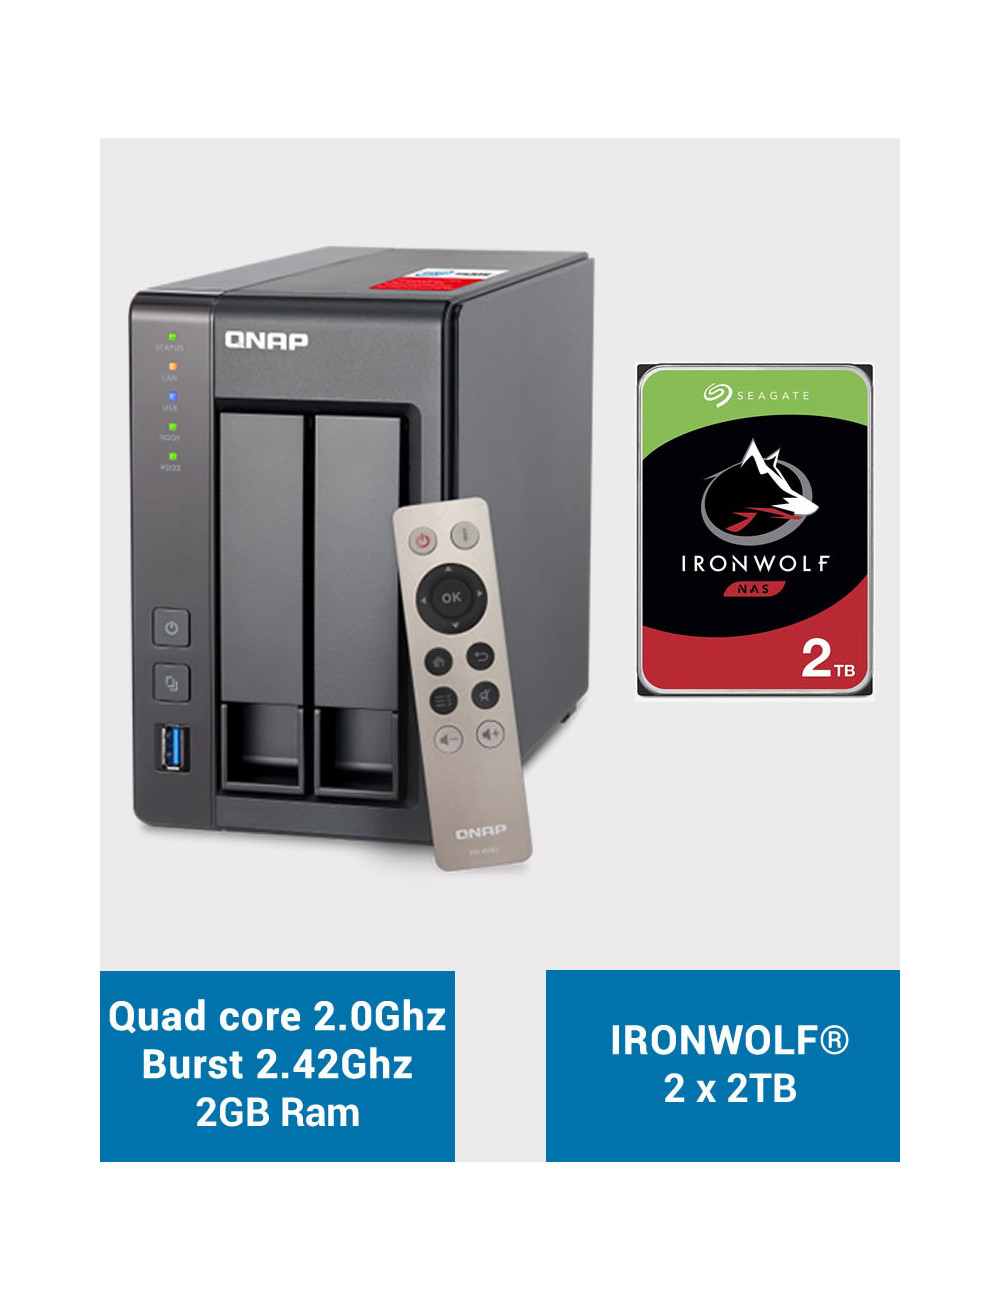 QNAP TS-251+ Serveur NAS IRONWOLF 4 To